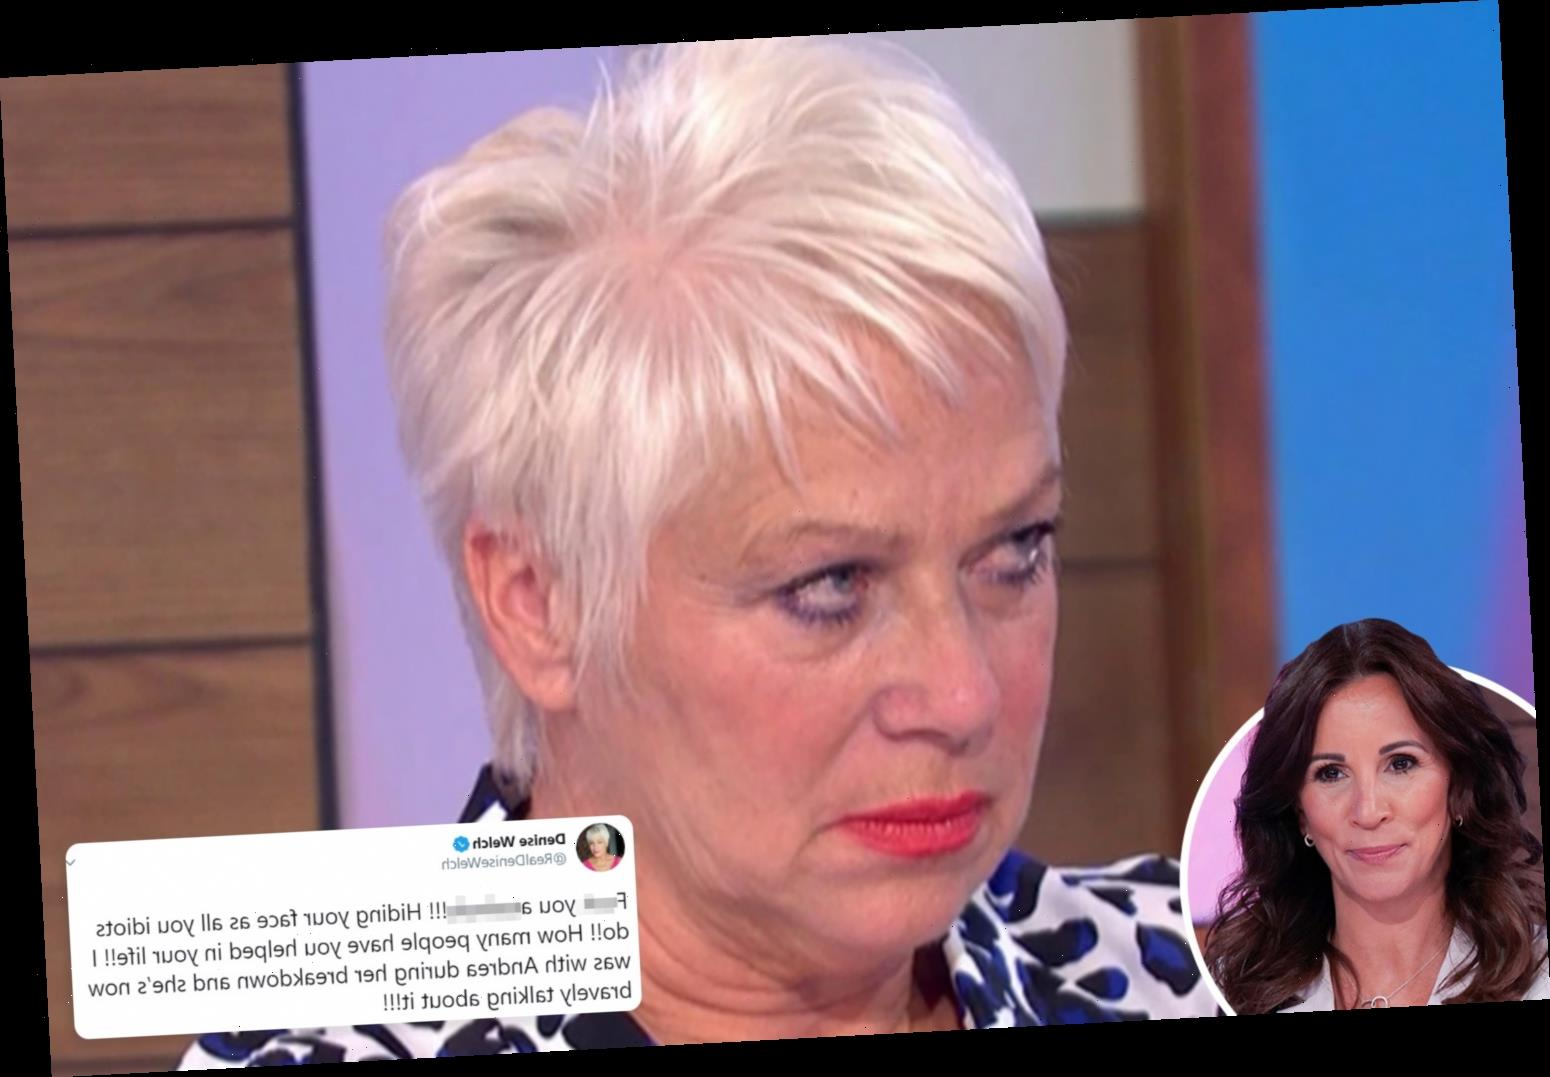 Denise Welch rages 'f*** you a**ehole' to cruel Loose Women viewer who accused Andrea McLean of faking her breakdown